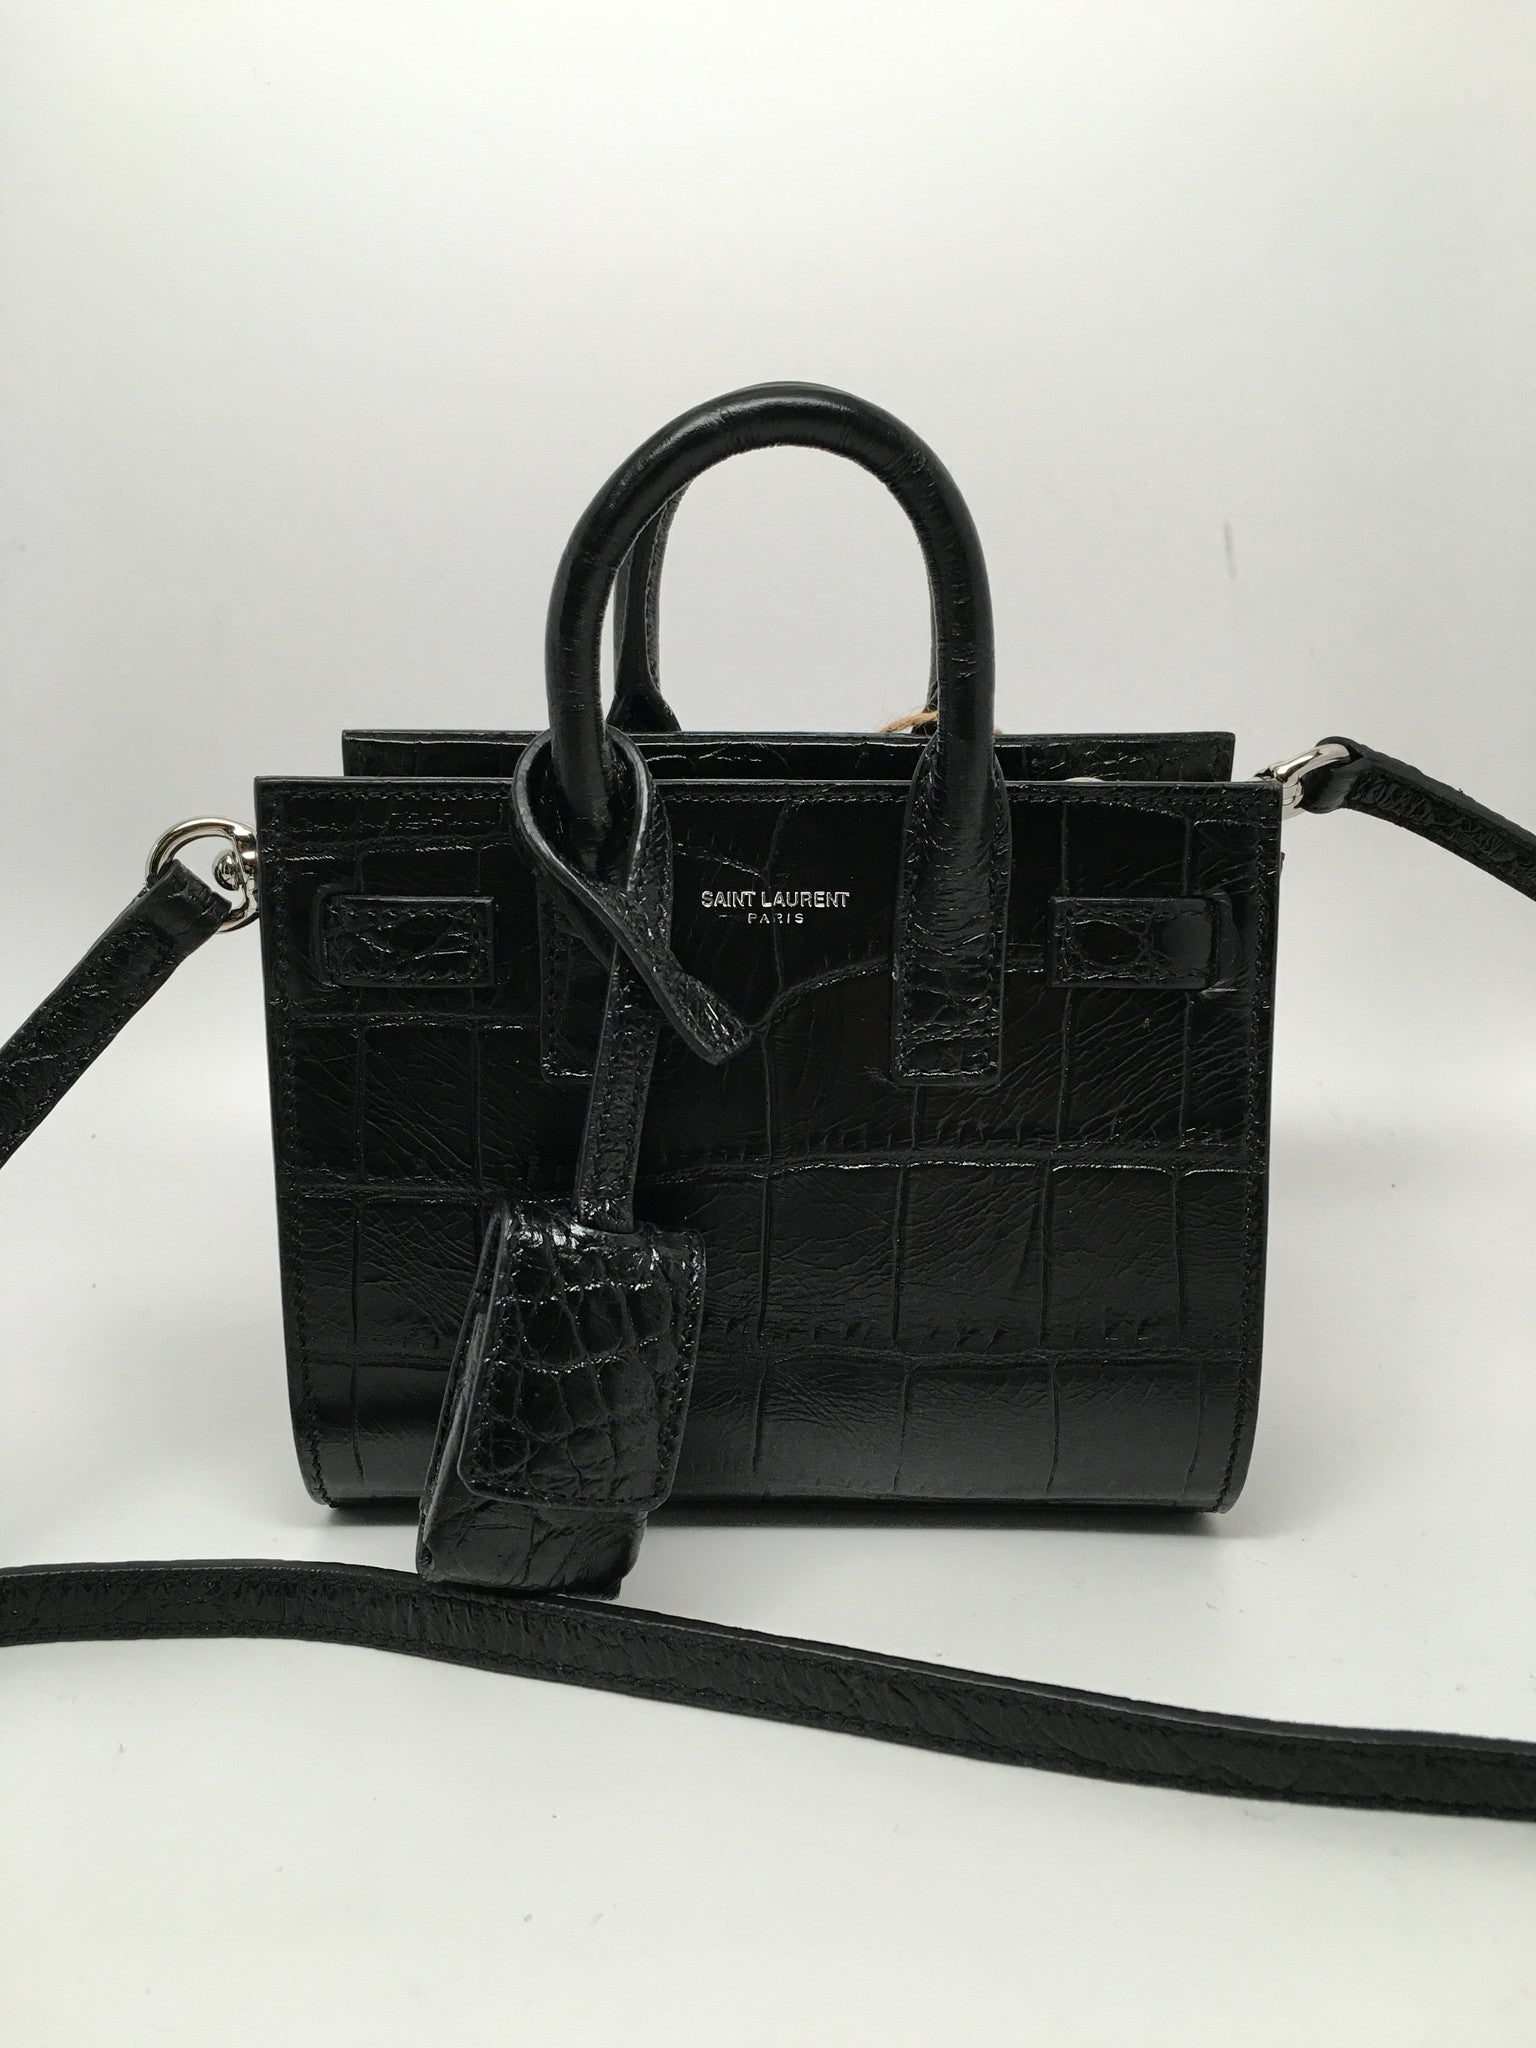 7f10b7bec SAINT LAURENT CLASSIC SAC DU JOUR TOY CROCODILE EMBOSSED LEATHER CROSS –  Hebster Boutique